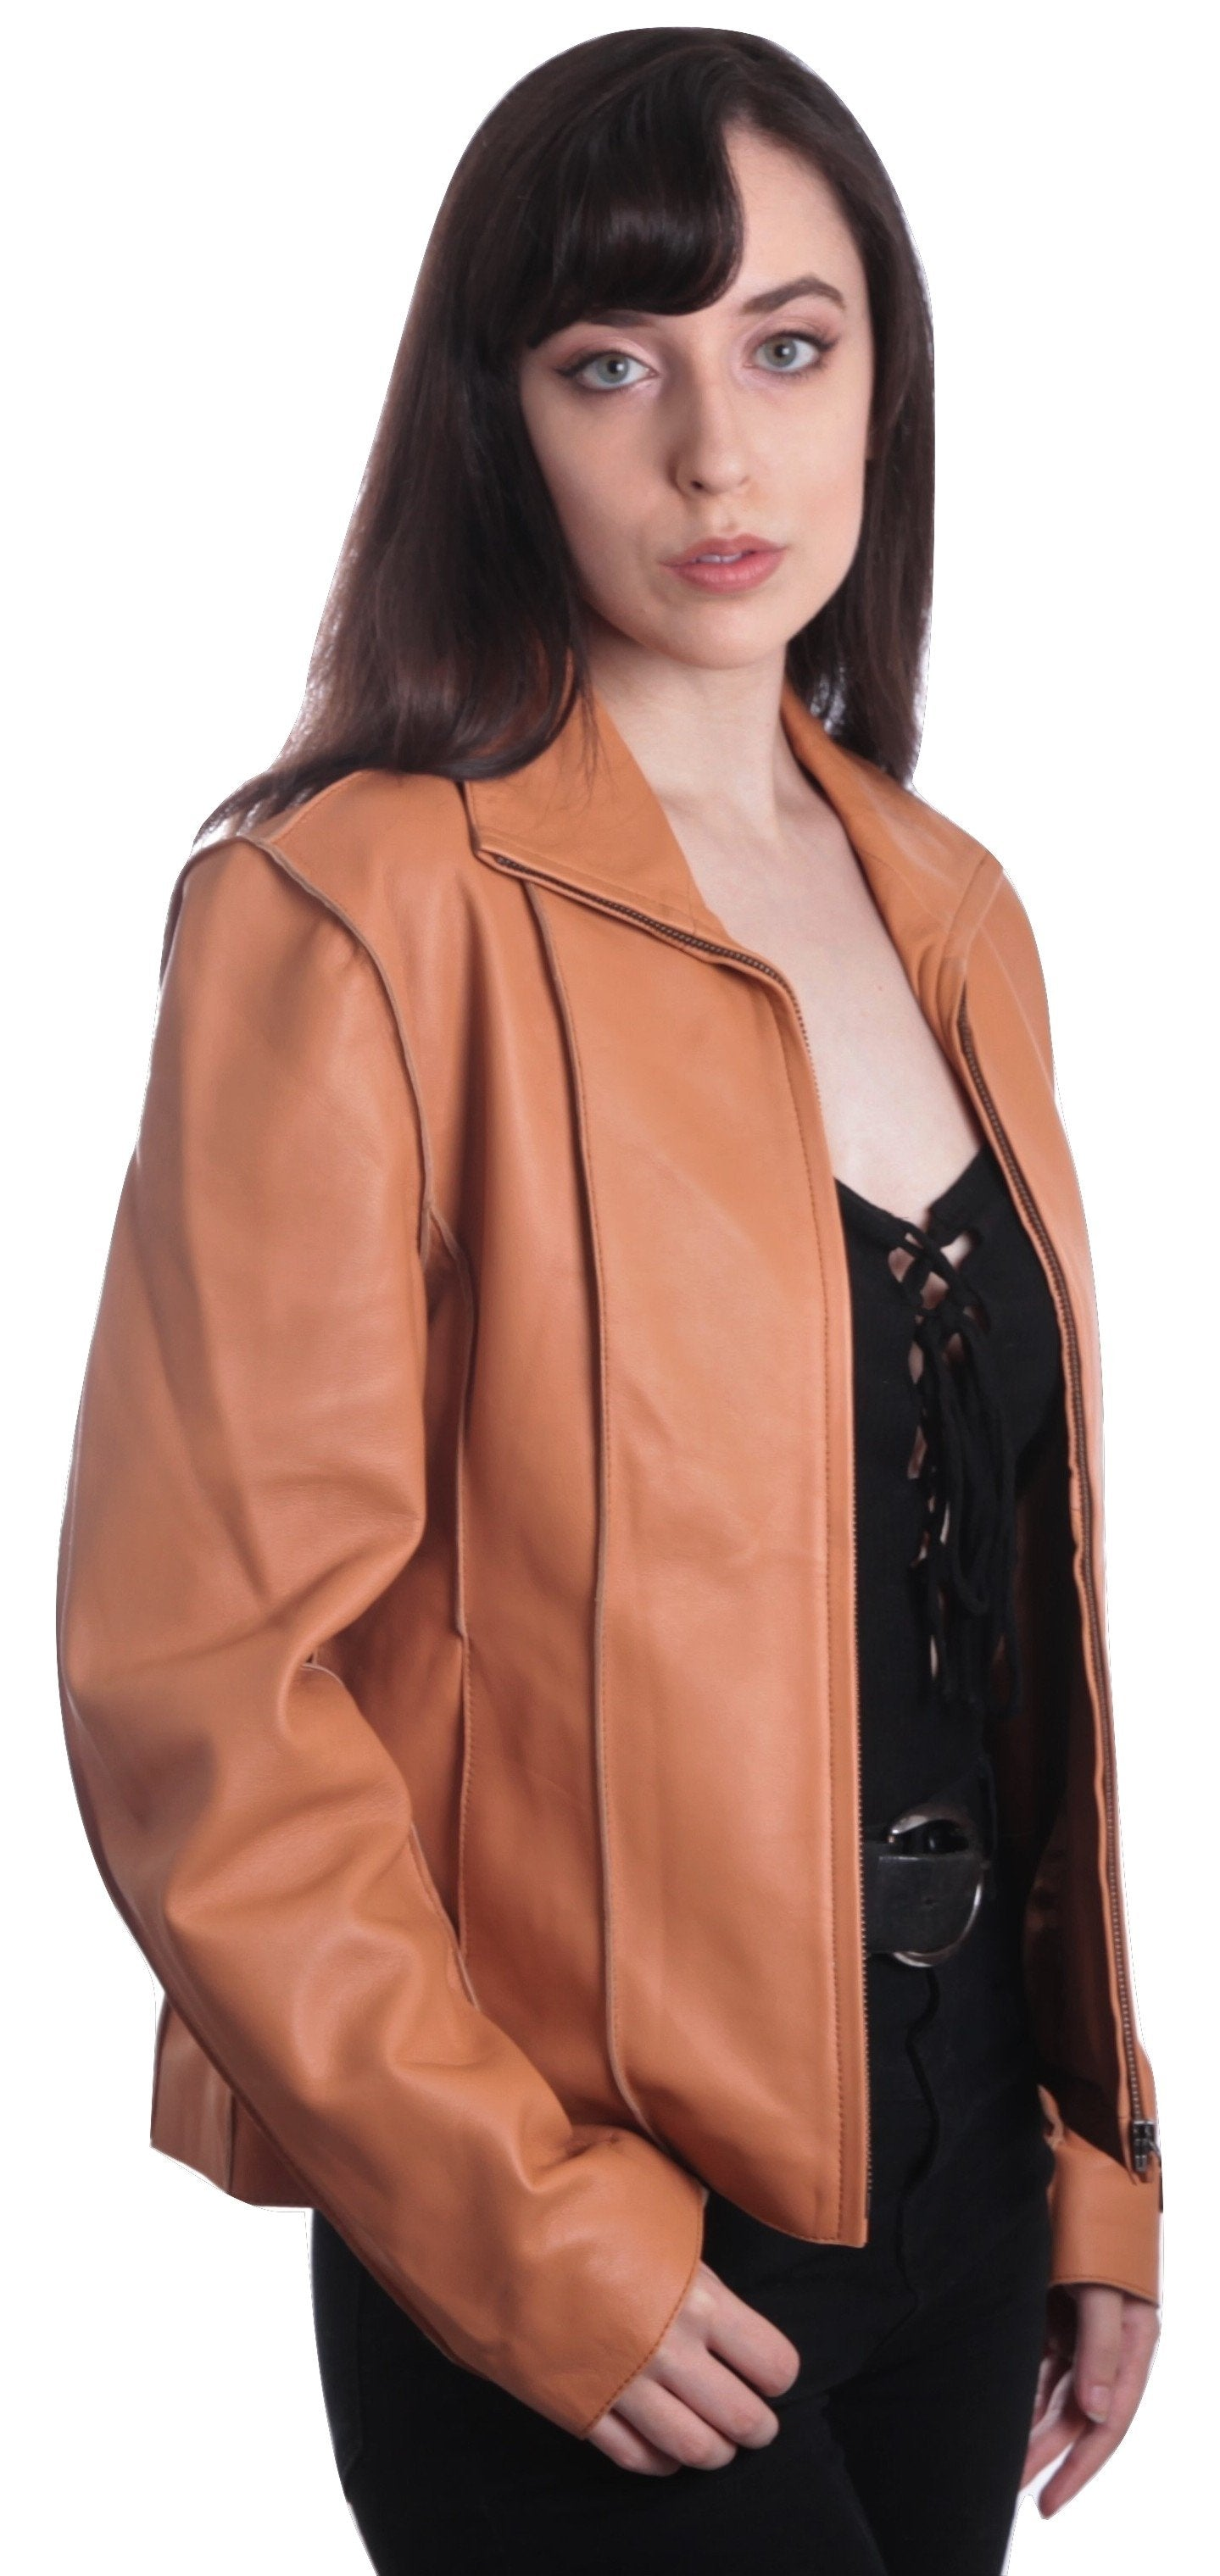 Womens Leather Jacket - Aaliya Womens Tan Sheepskin Leather Jacket - Discounted!